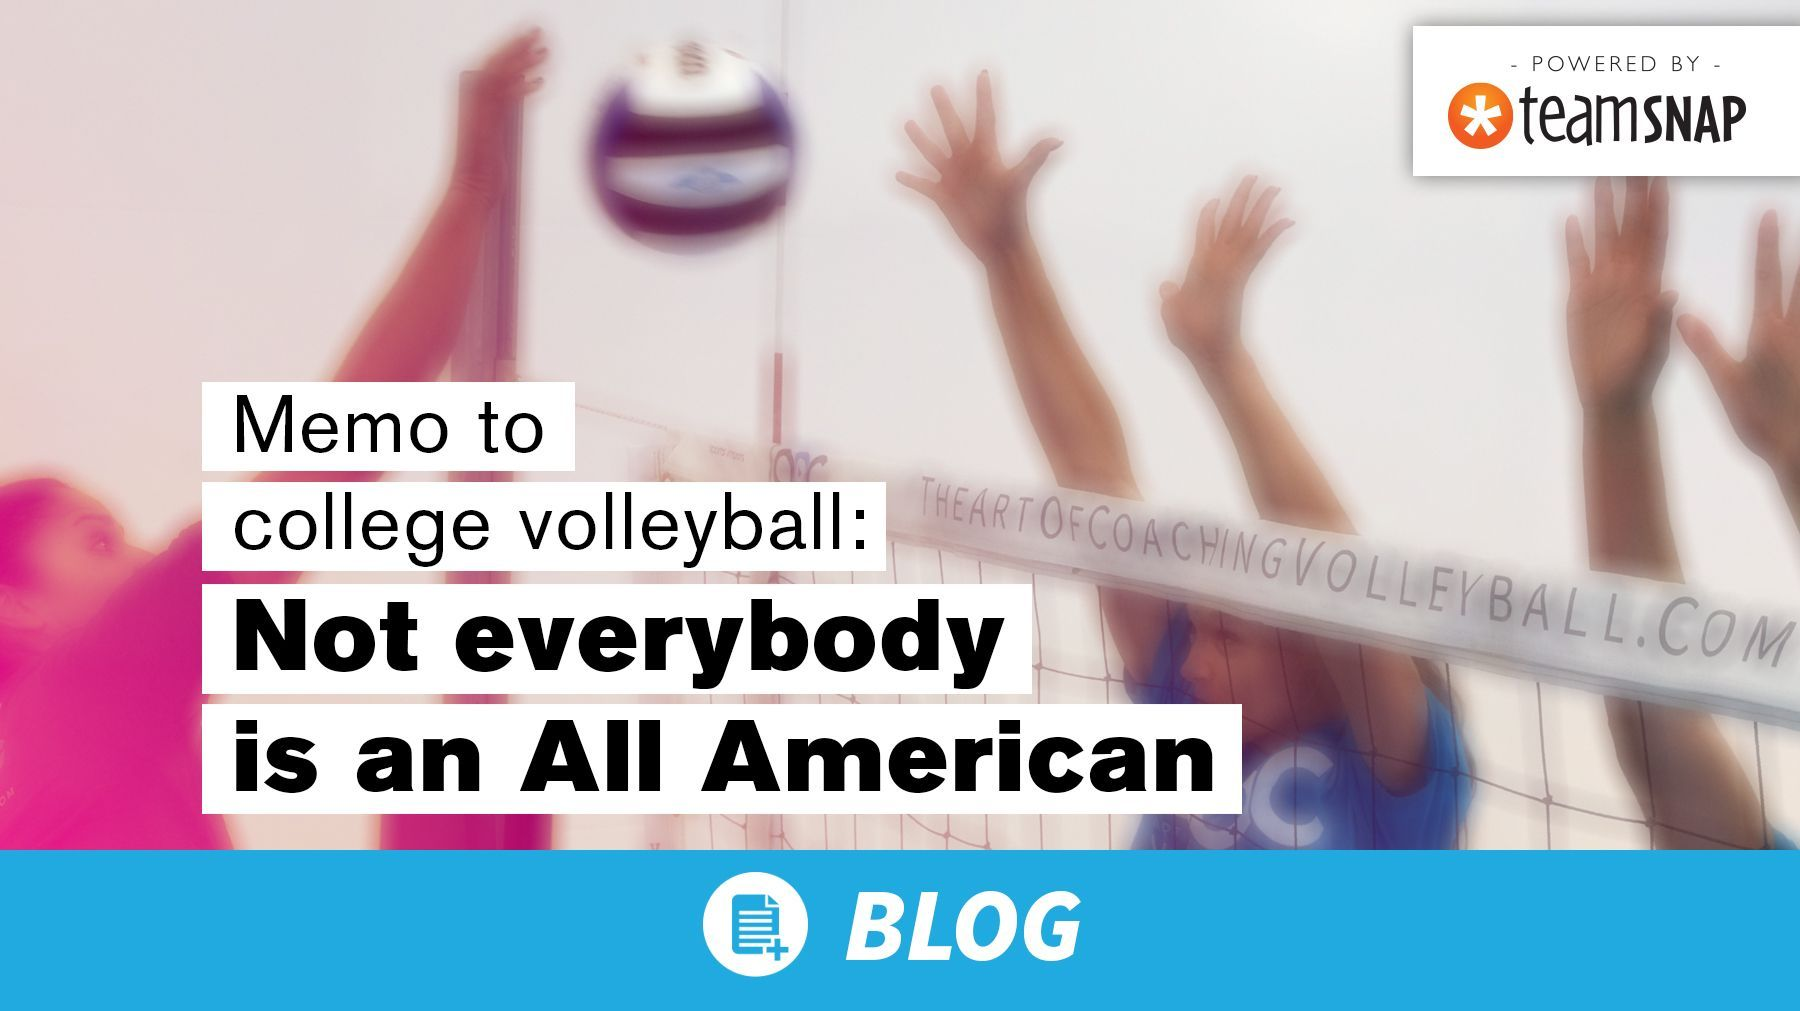 Memo To College Volleyball Not Everybody Is An All American The Art Of Coaching Volleyball Coaching Volleyball American Coaching